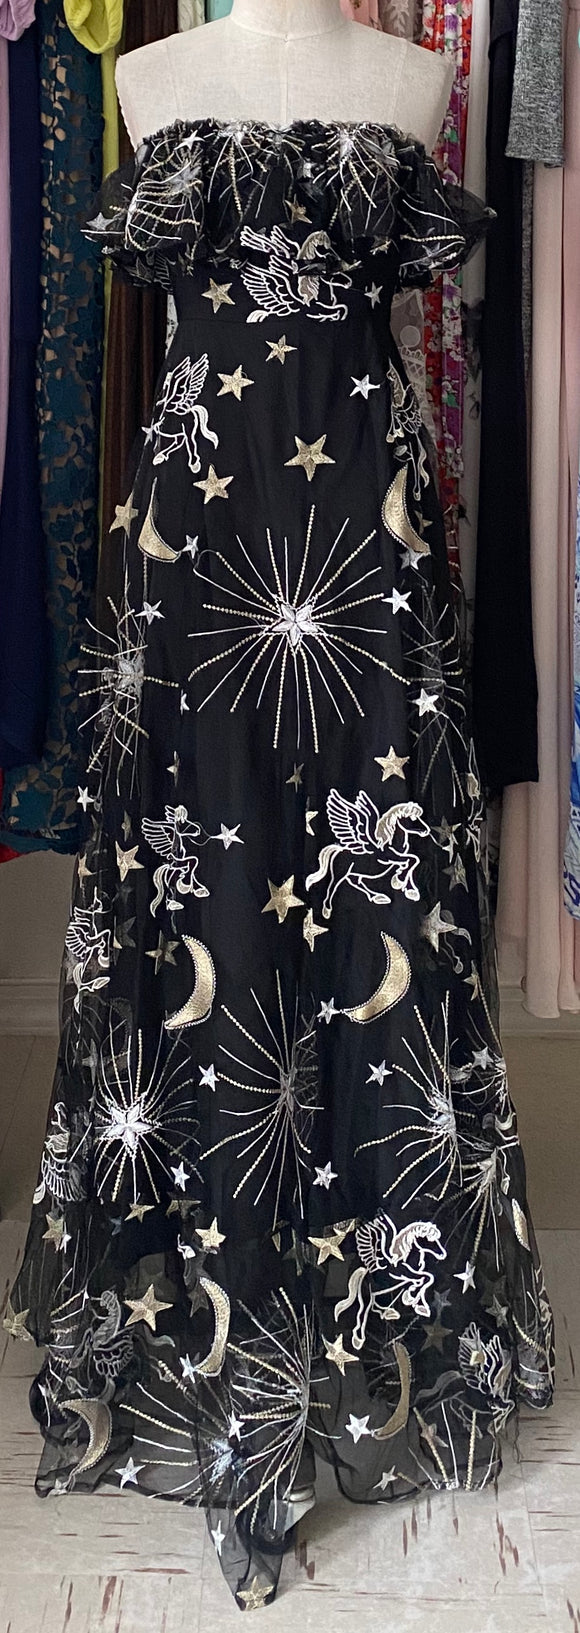 Celestial Dreams Dress- Size Small